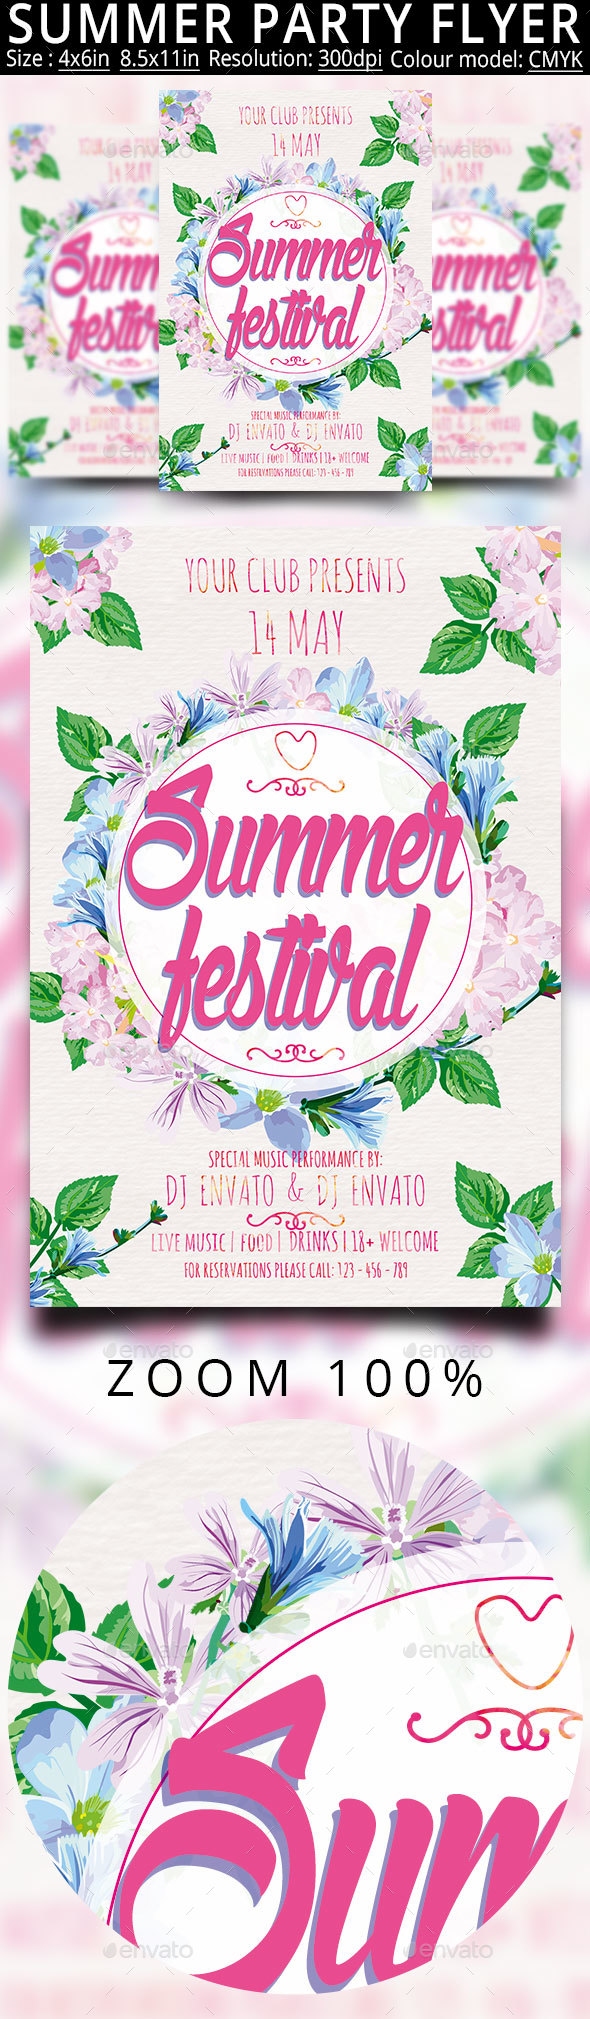 Summer Festival Party Flyer Poster - Clubs & Parties Events